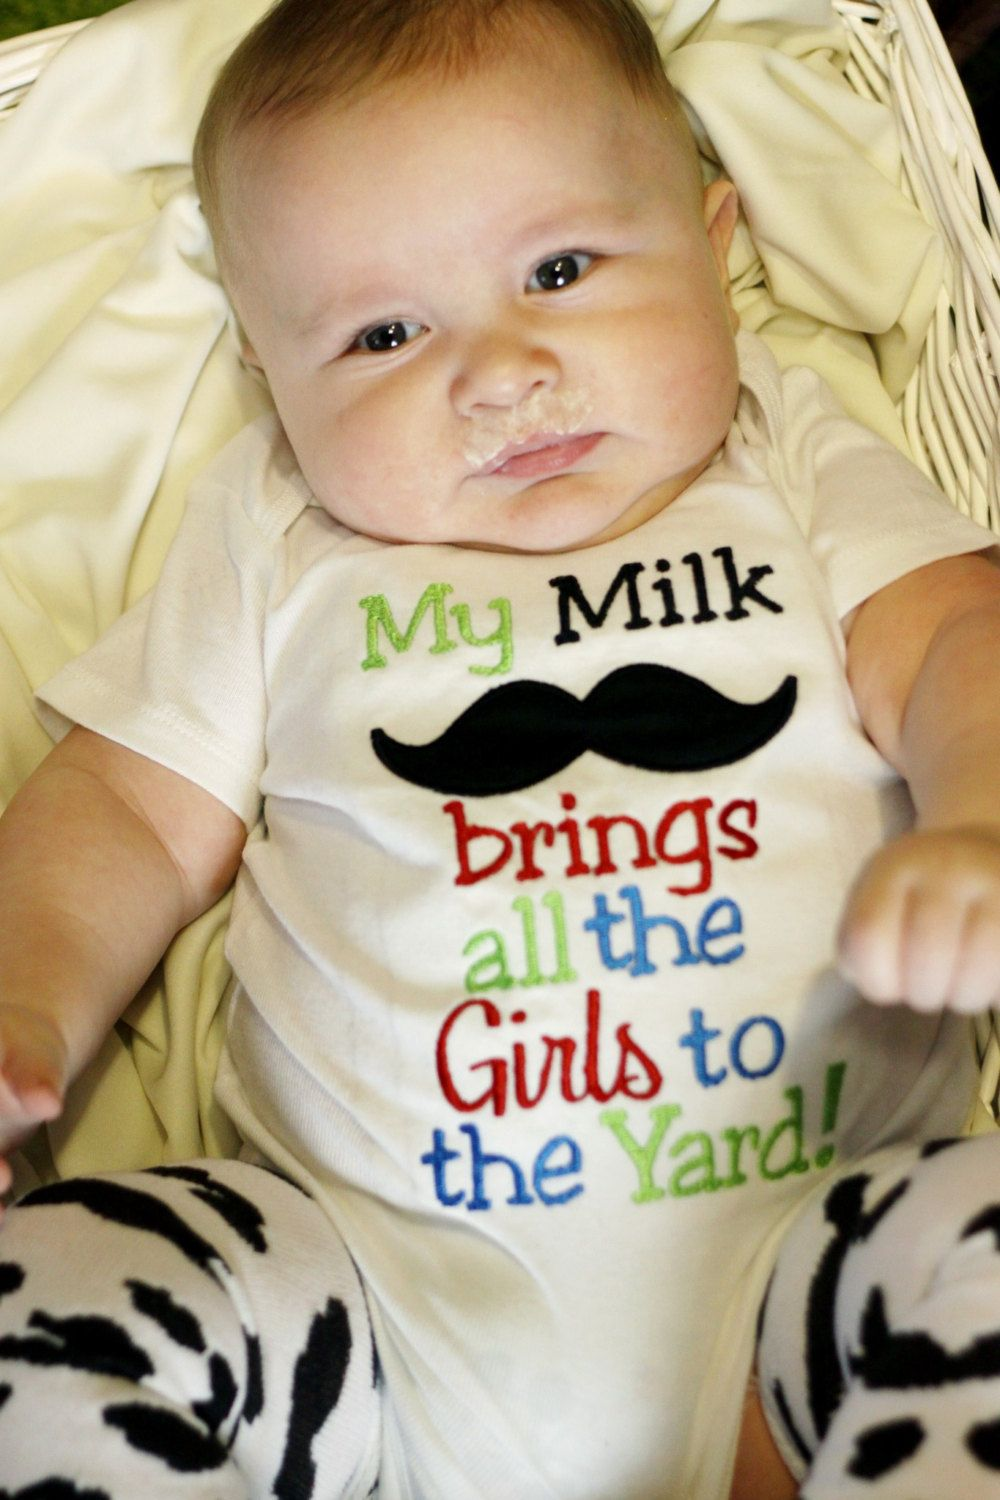 b0cd697a82a3 My Milk Mustache Brings All the Girls to the Yard Applique Shirt or ...